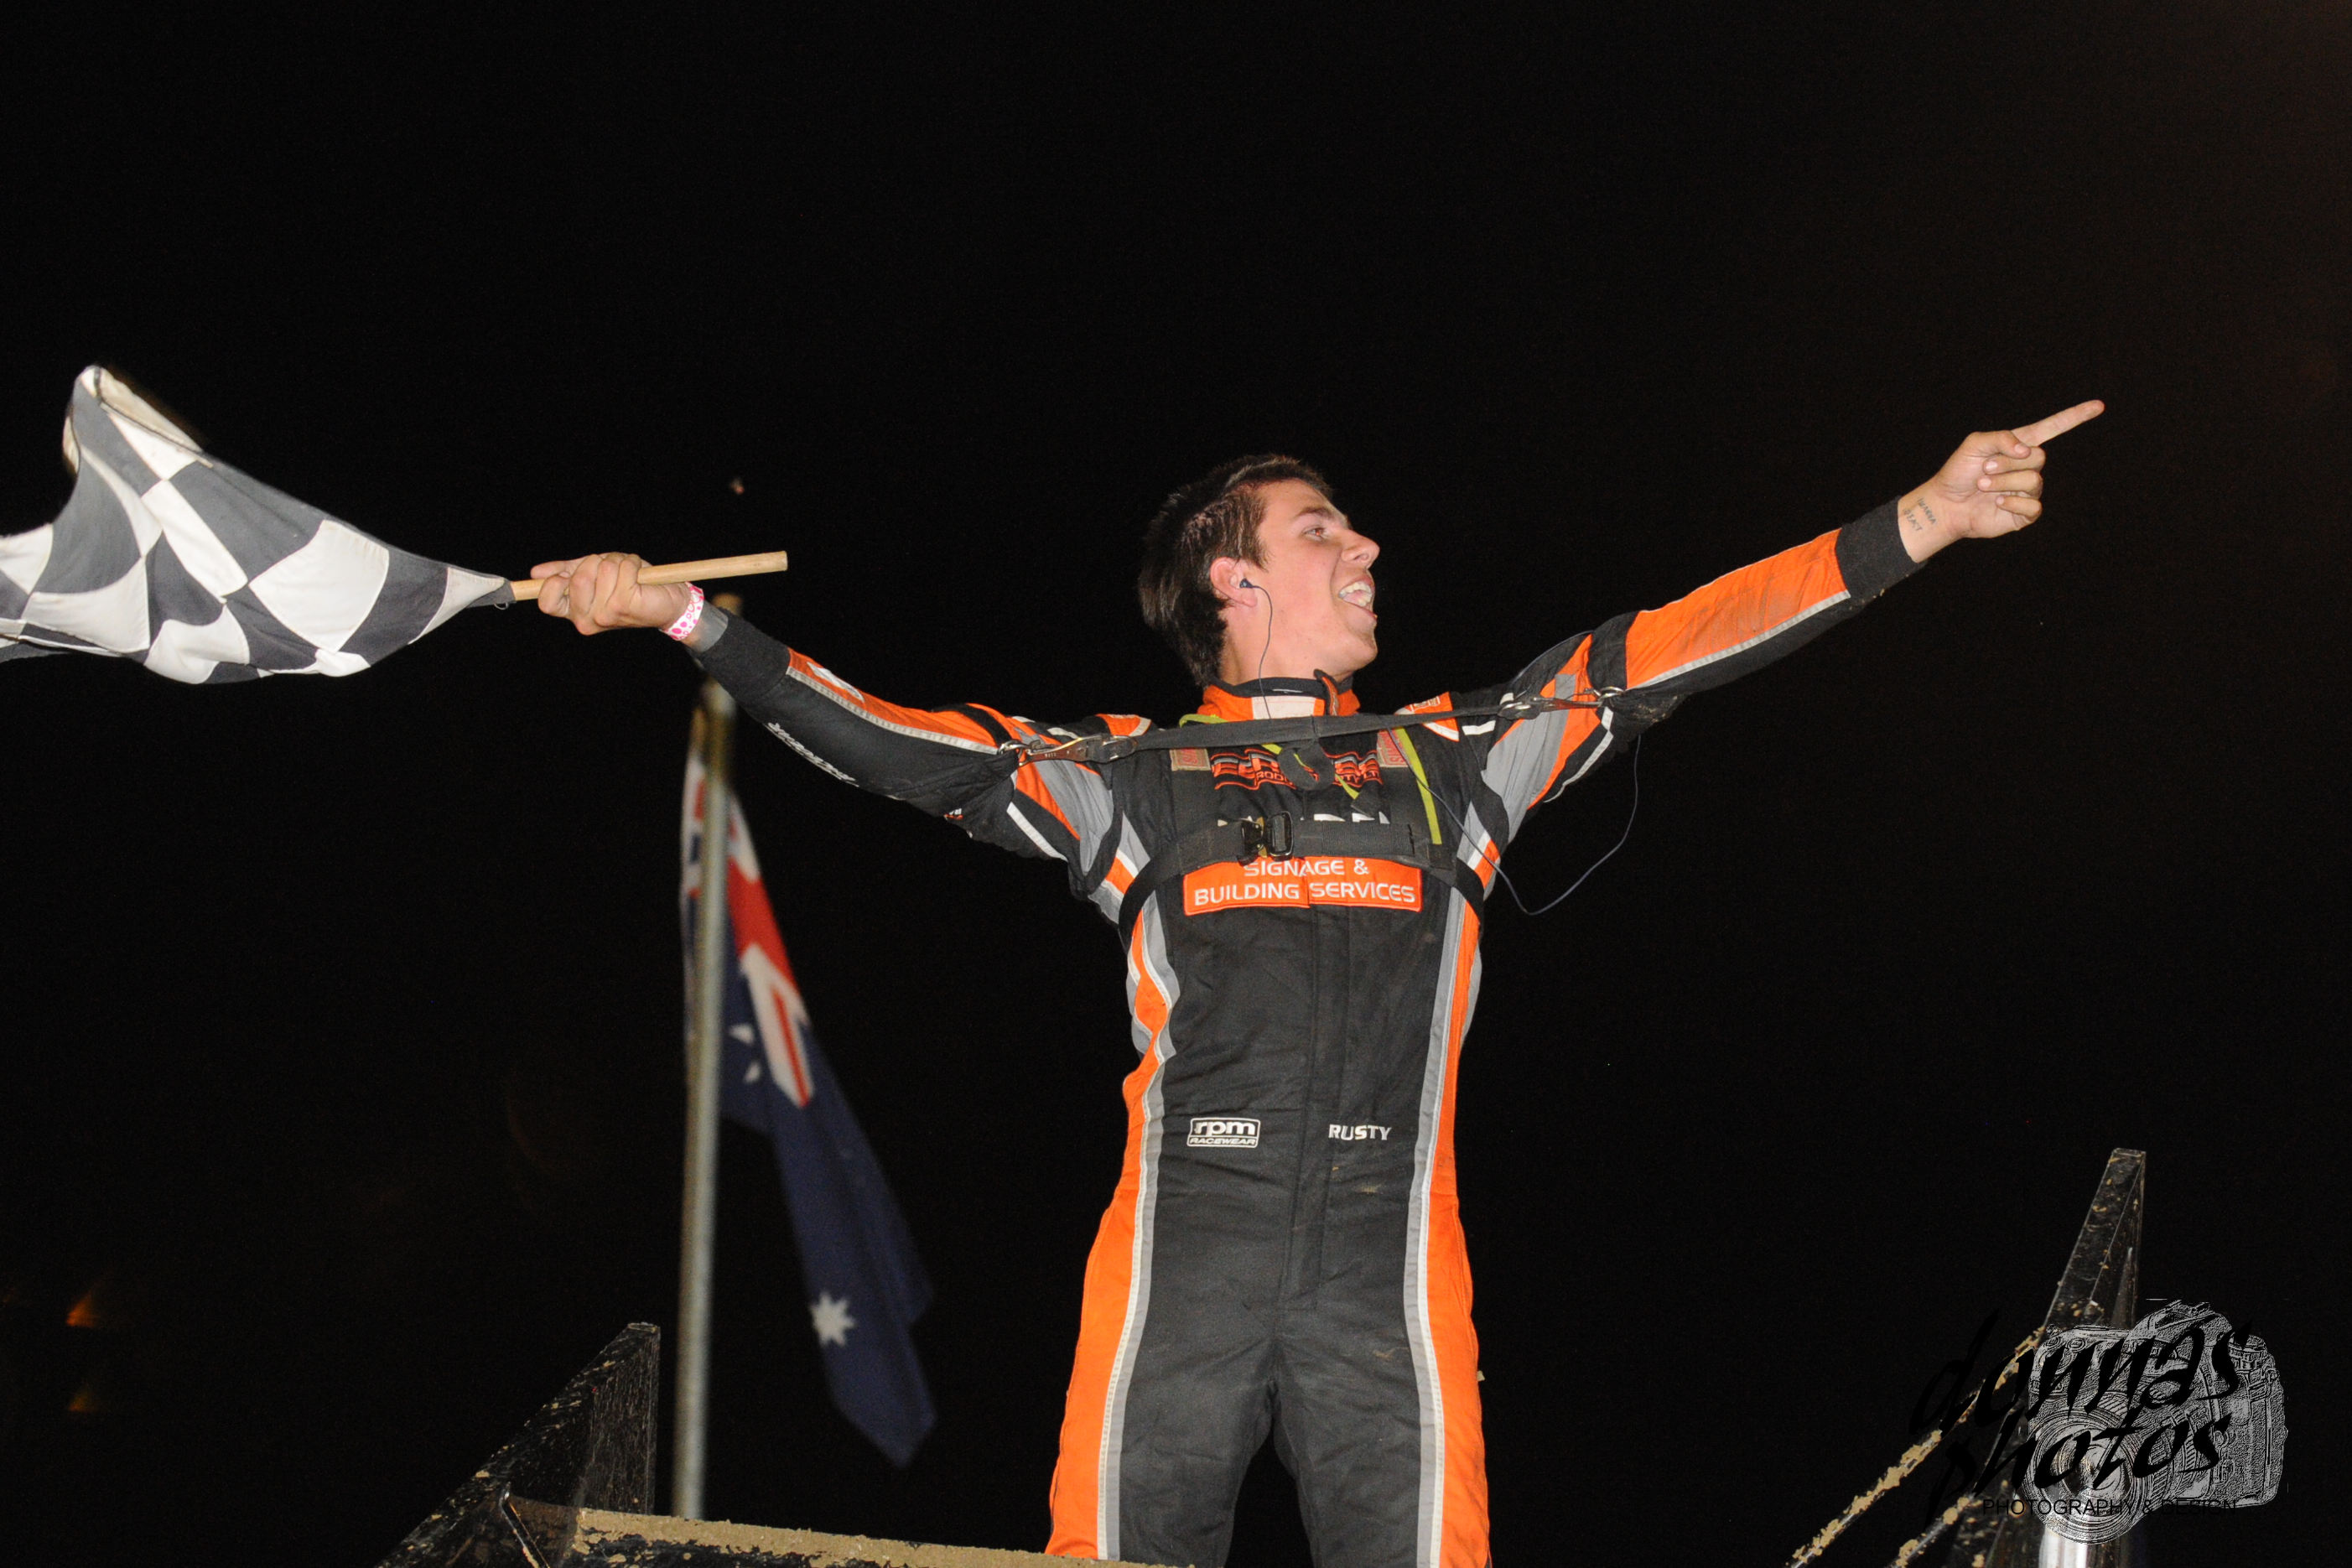 On a cool night Hickman sets a hot pace to take a maiden title win